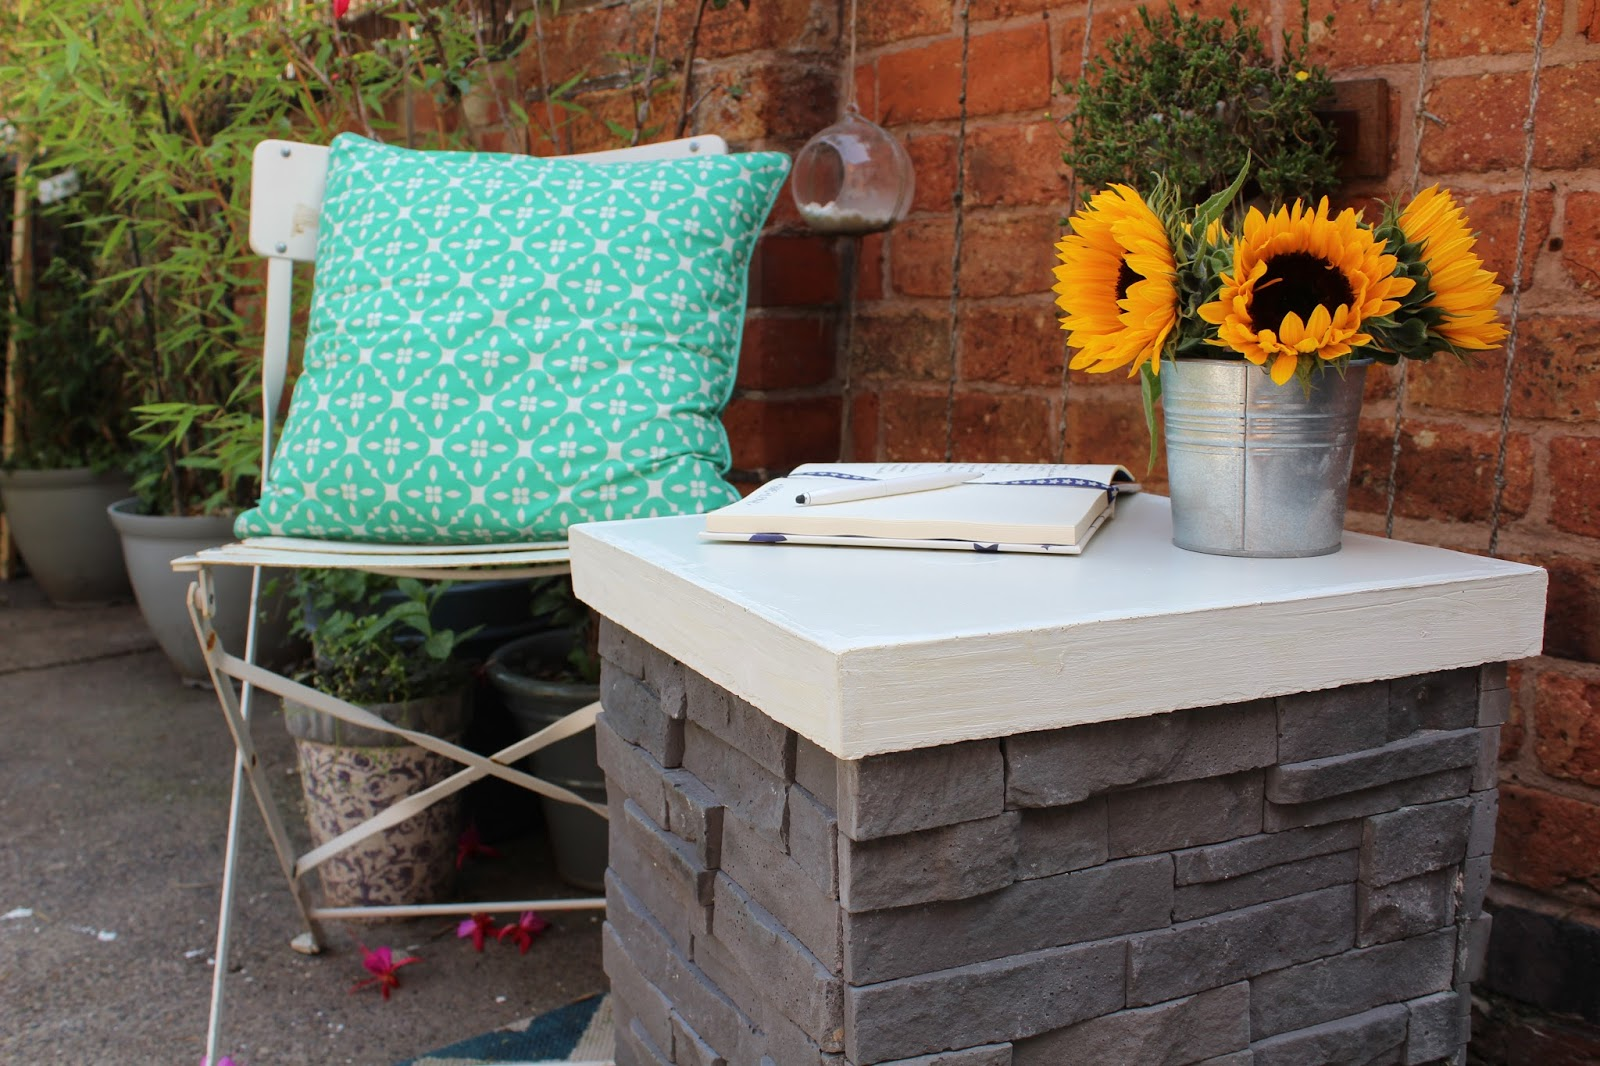 DIY Feature Tiled Table with Concrete Top